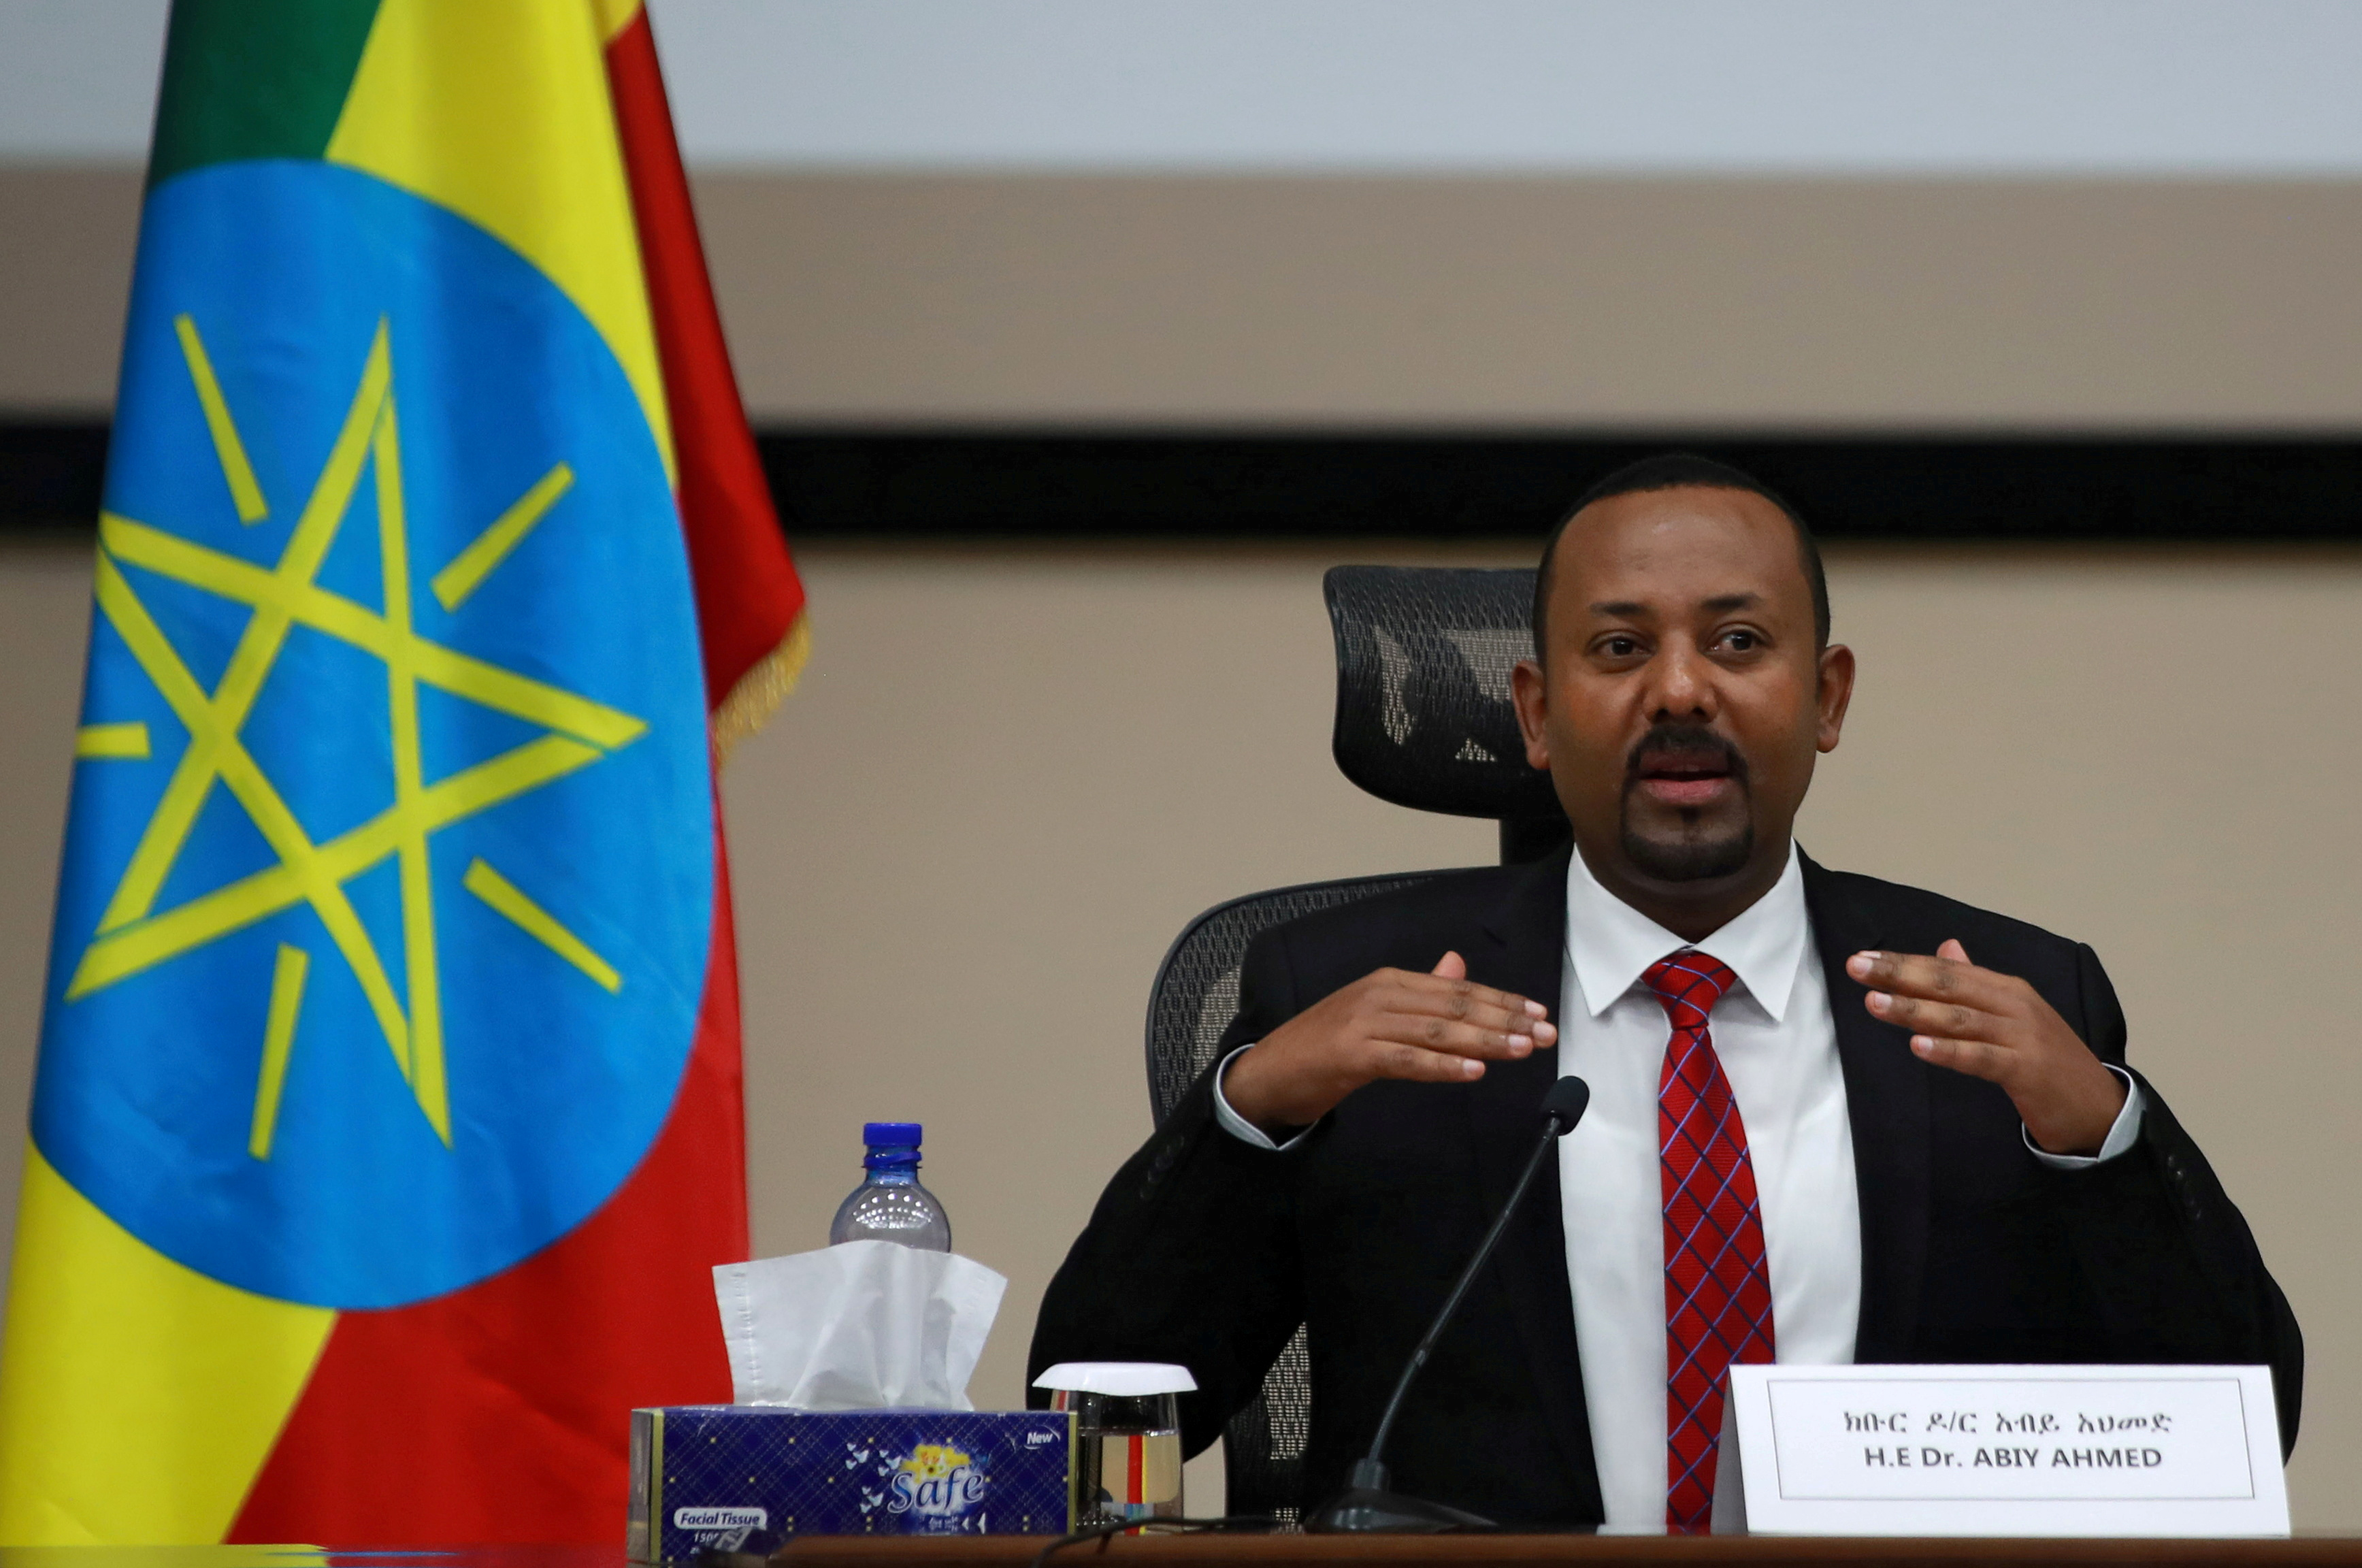 Ethiopia's Prime Minister Abiy Ahmed speaks during a question and answer session with lawmakers in Addis Ababa, Ethiopia, November 30, 2020. REUTERS/Tiksa Negeri